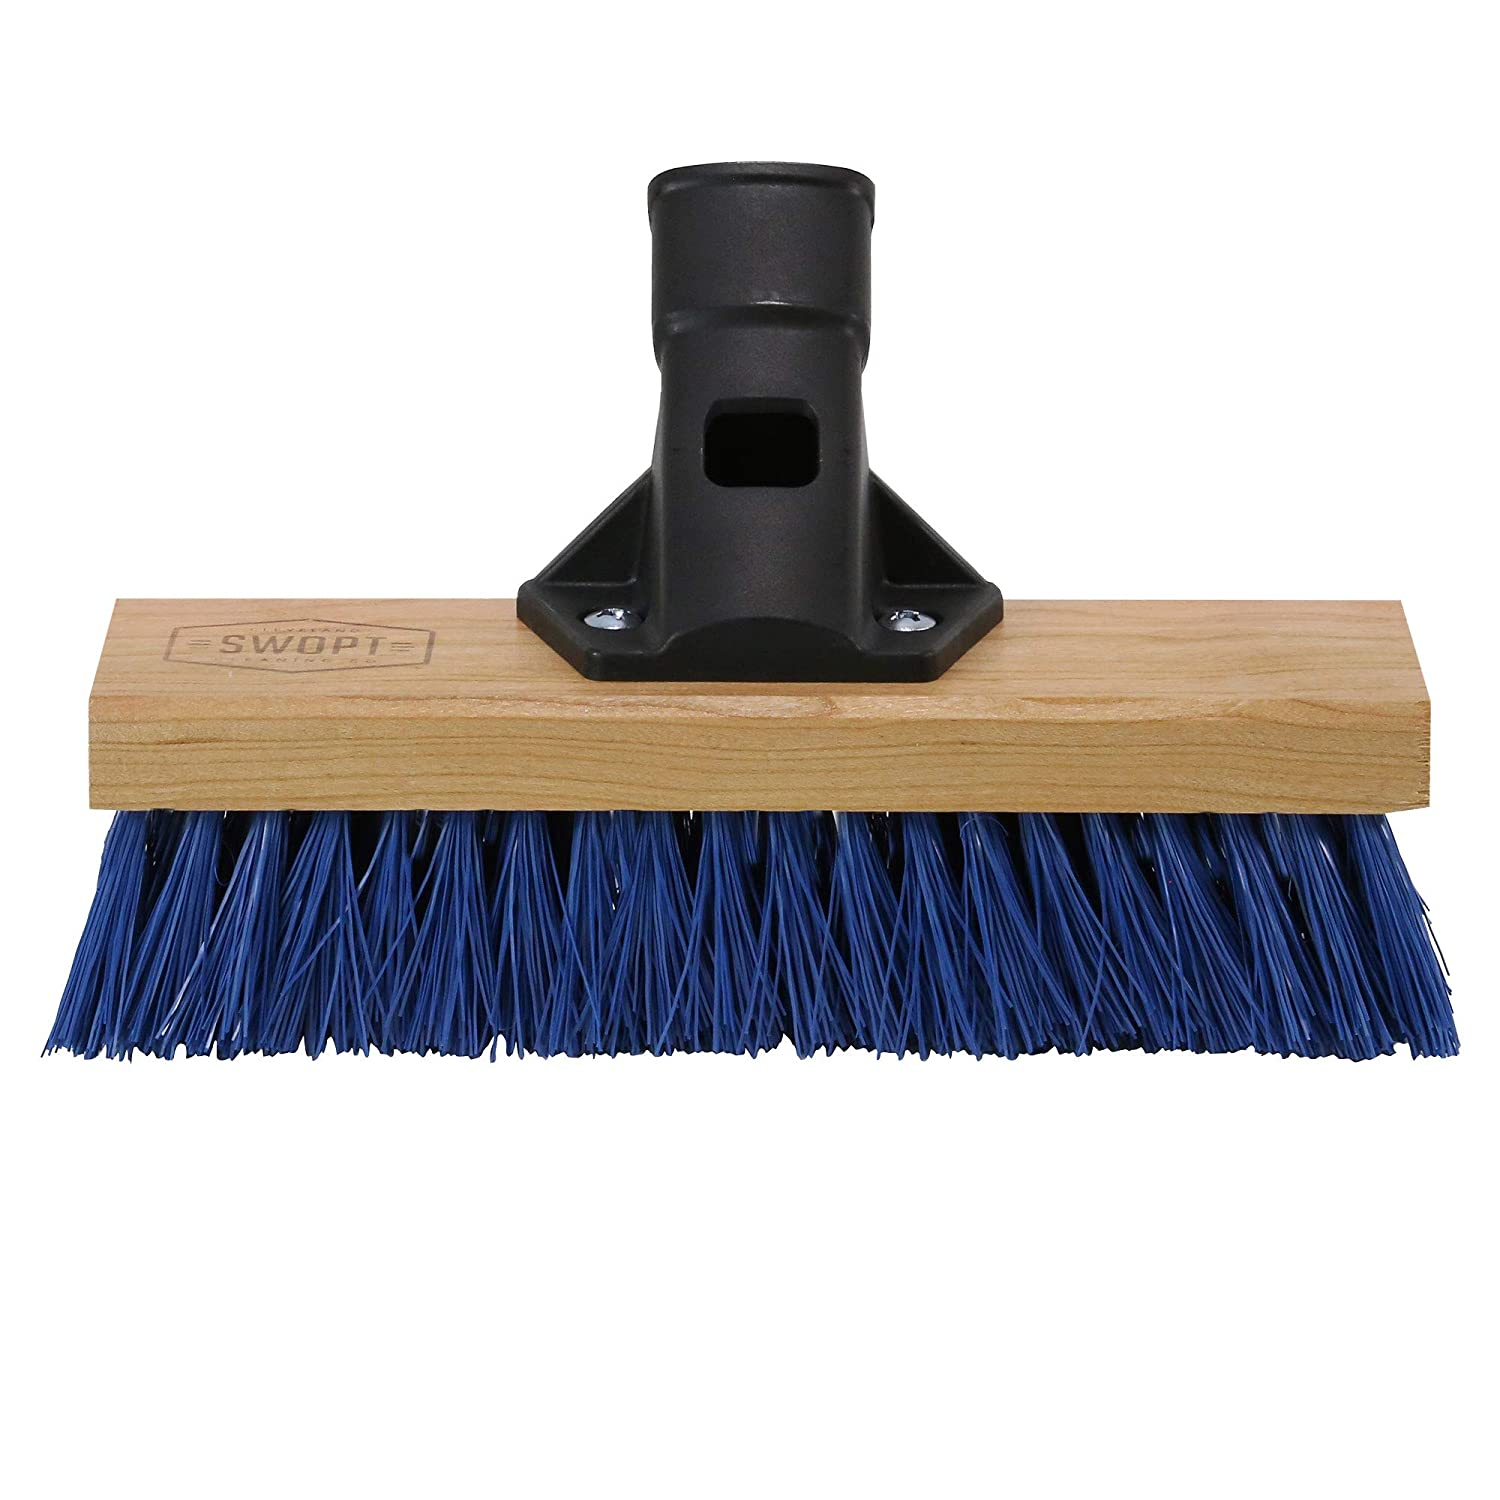 SWOPT Premium Multi-Surface Angle Broom Head Interchangeable with Other SWOPT Products for More Efficient Cleaning and Storage 5119C6 Handle Sold Separately Angled Broom for Indoor and Outdoor Use Head Only